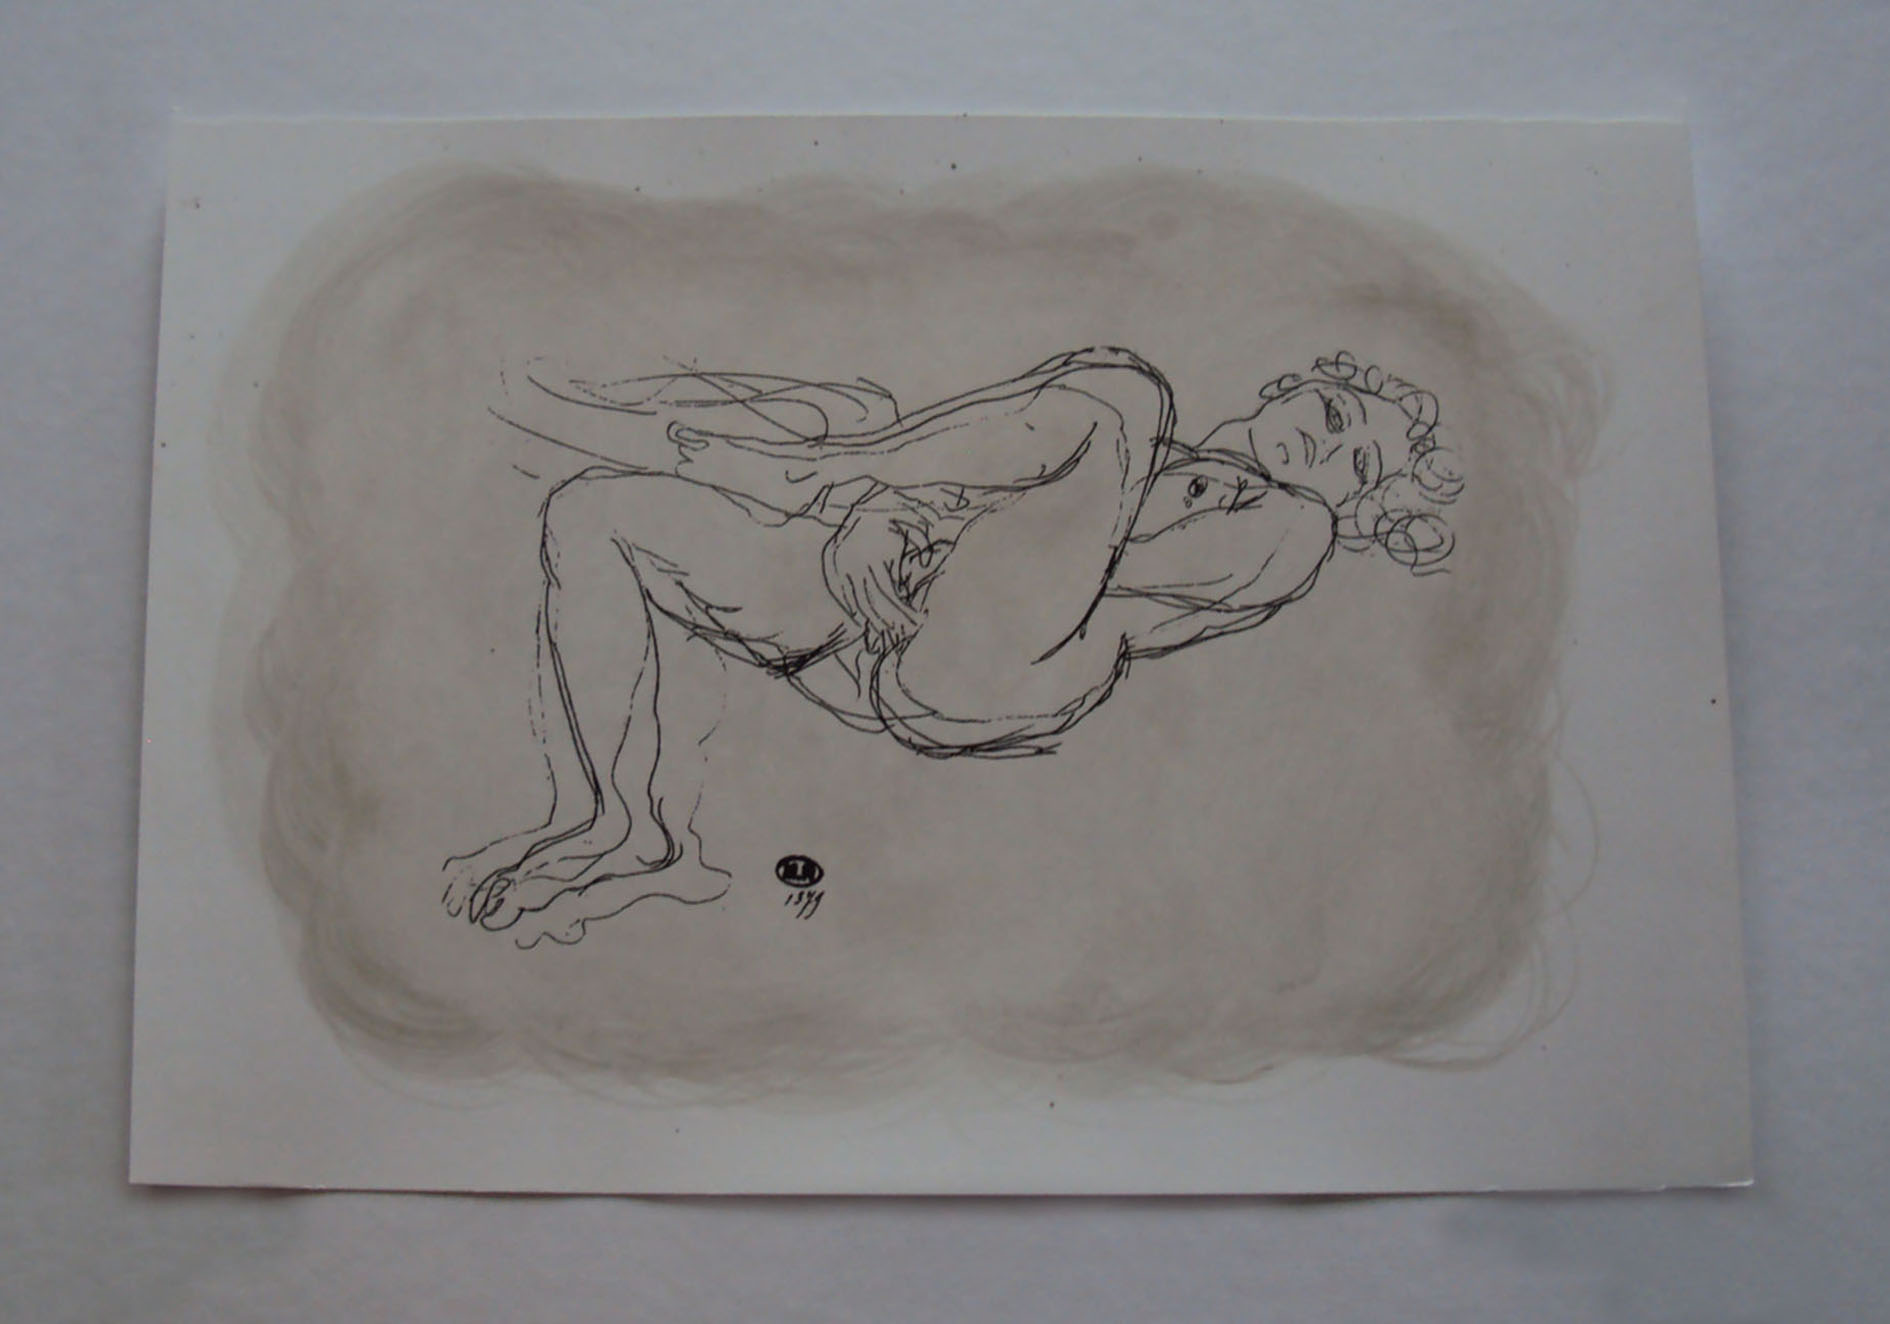 Auguste Rodin 'Erotic' Di-Litho Oil Enhanced – COA